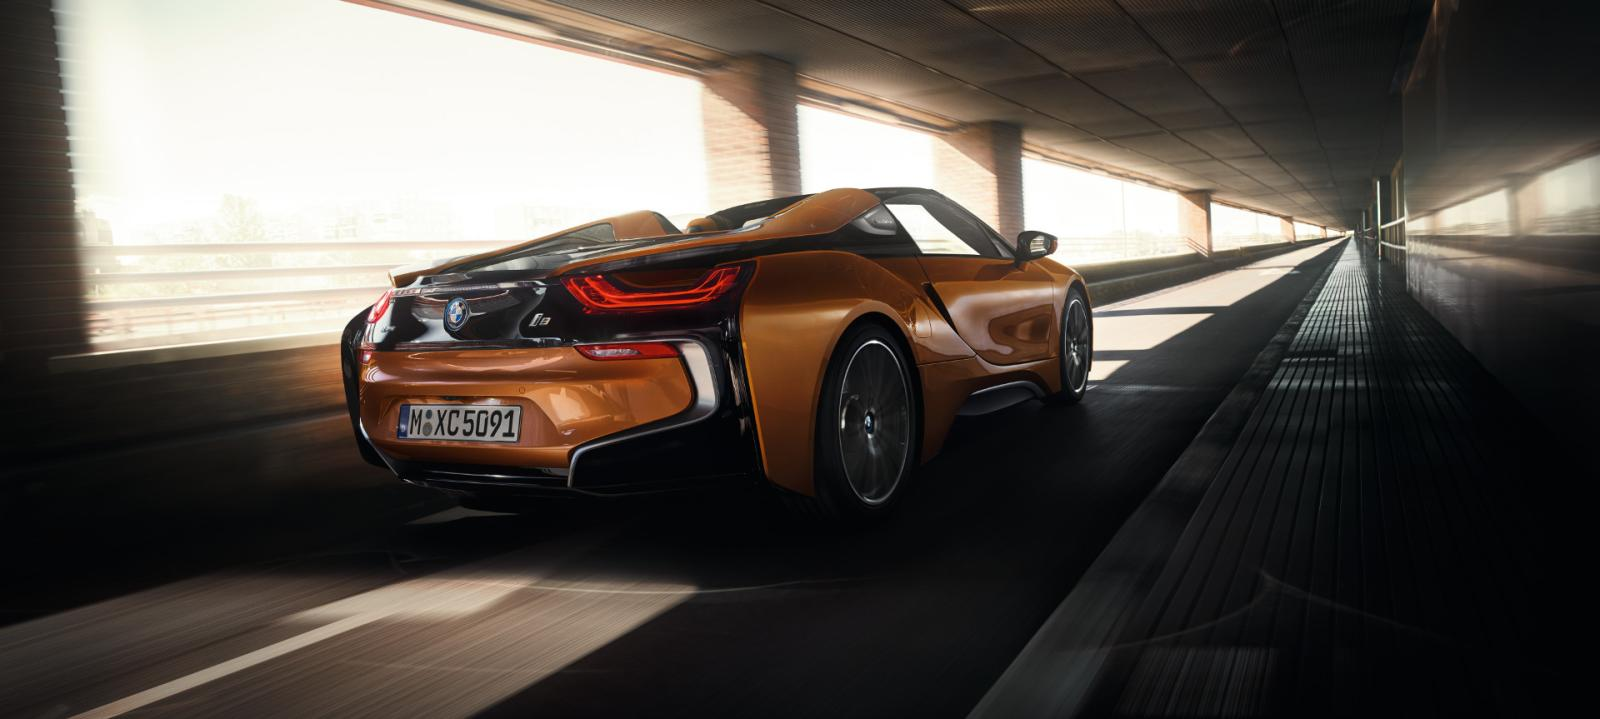 Bmw Car Sunset Z4 Wallpapers Hd Desktop And Mobile Backgrounds